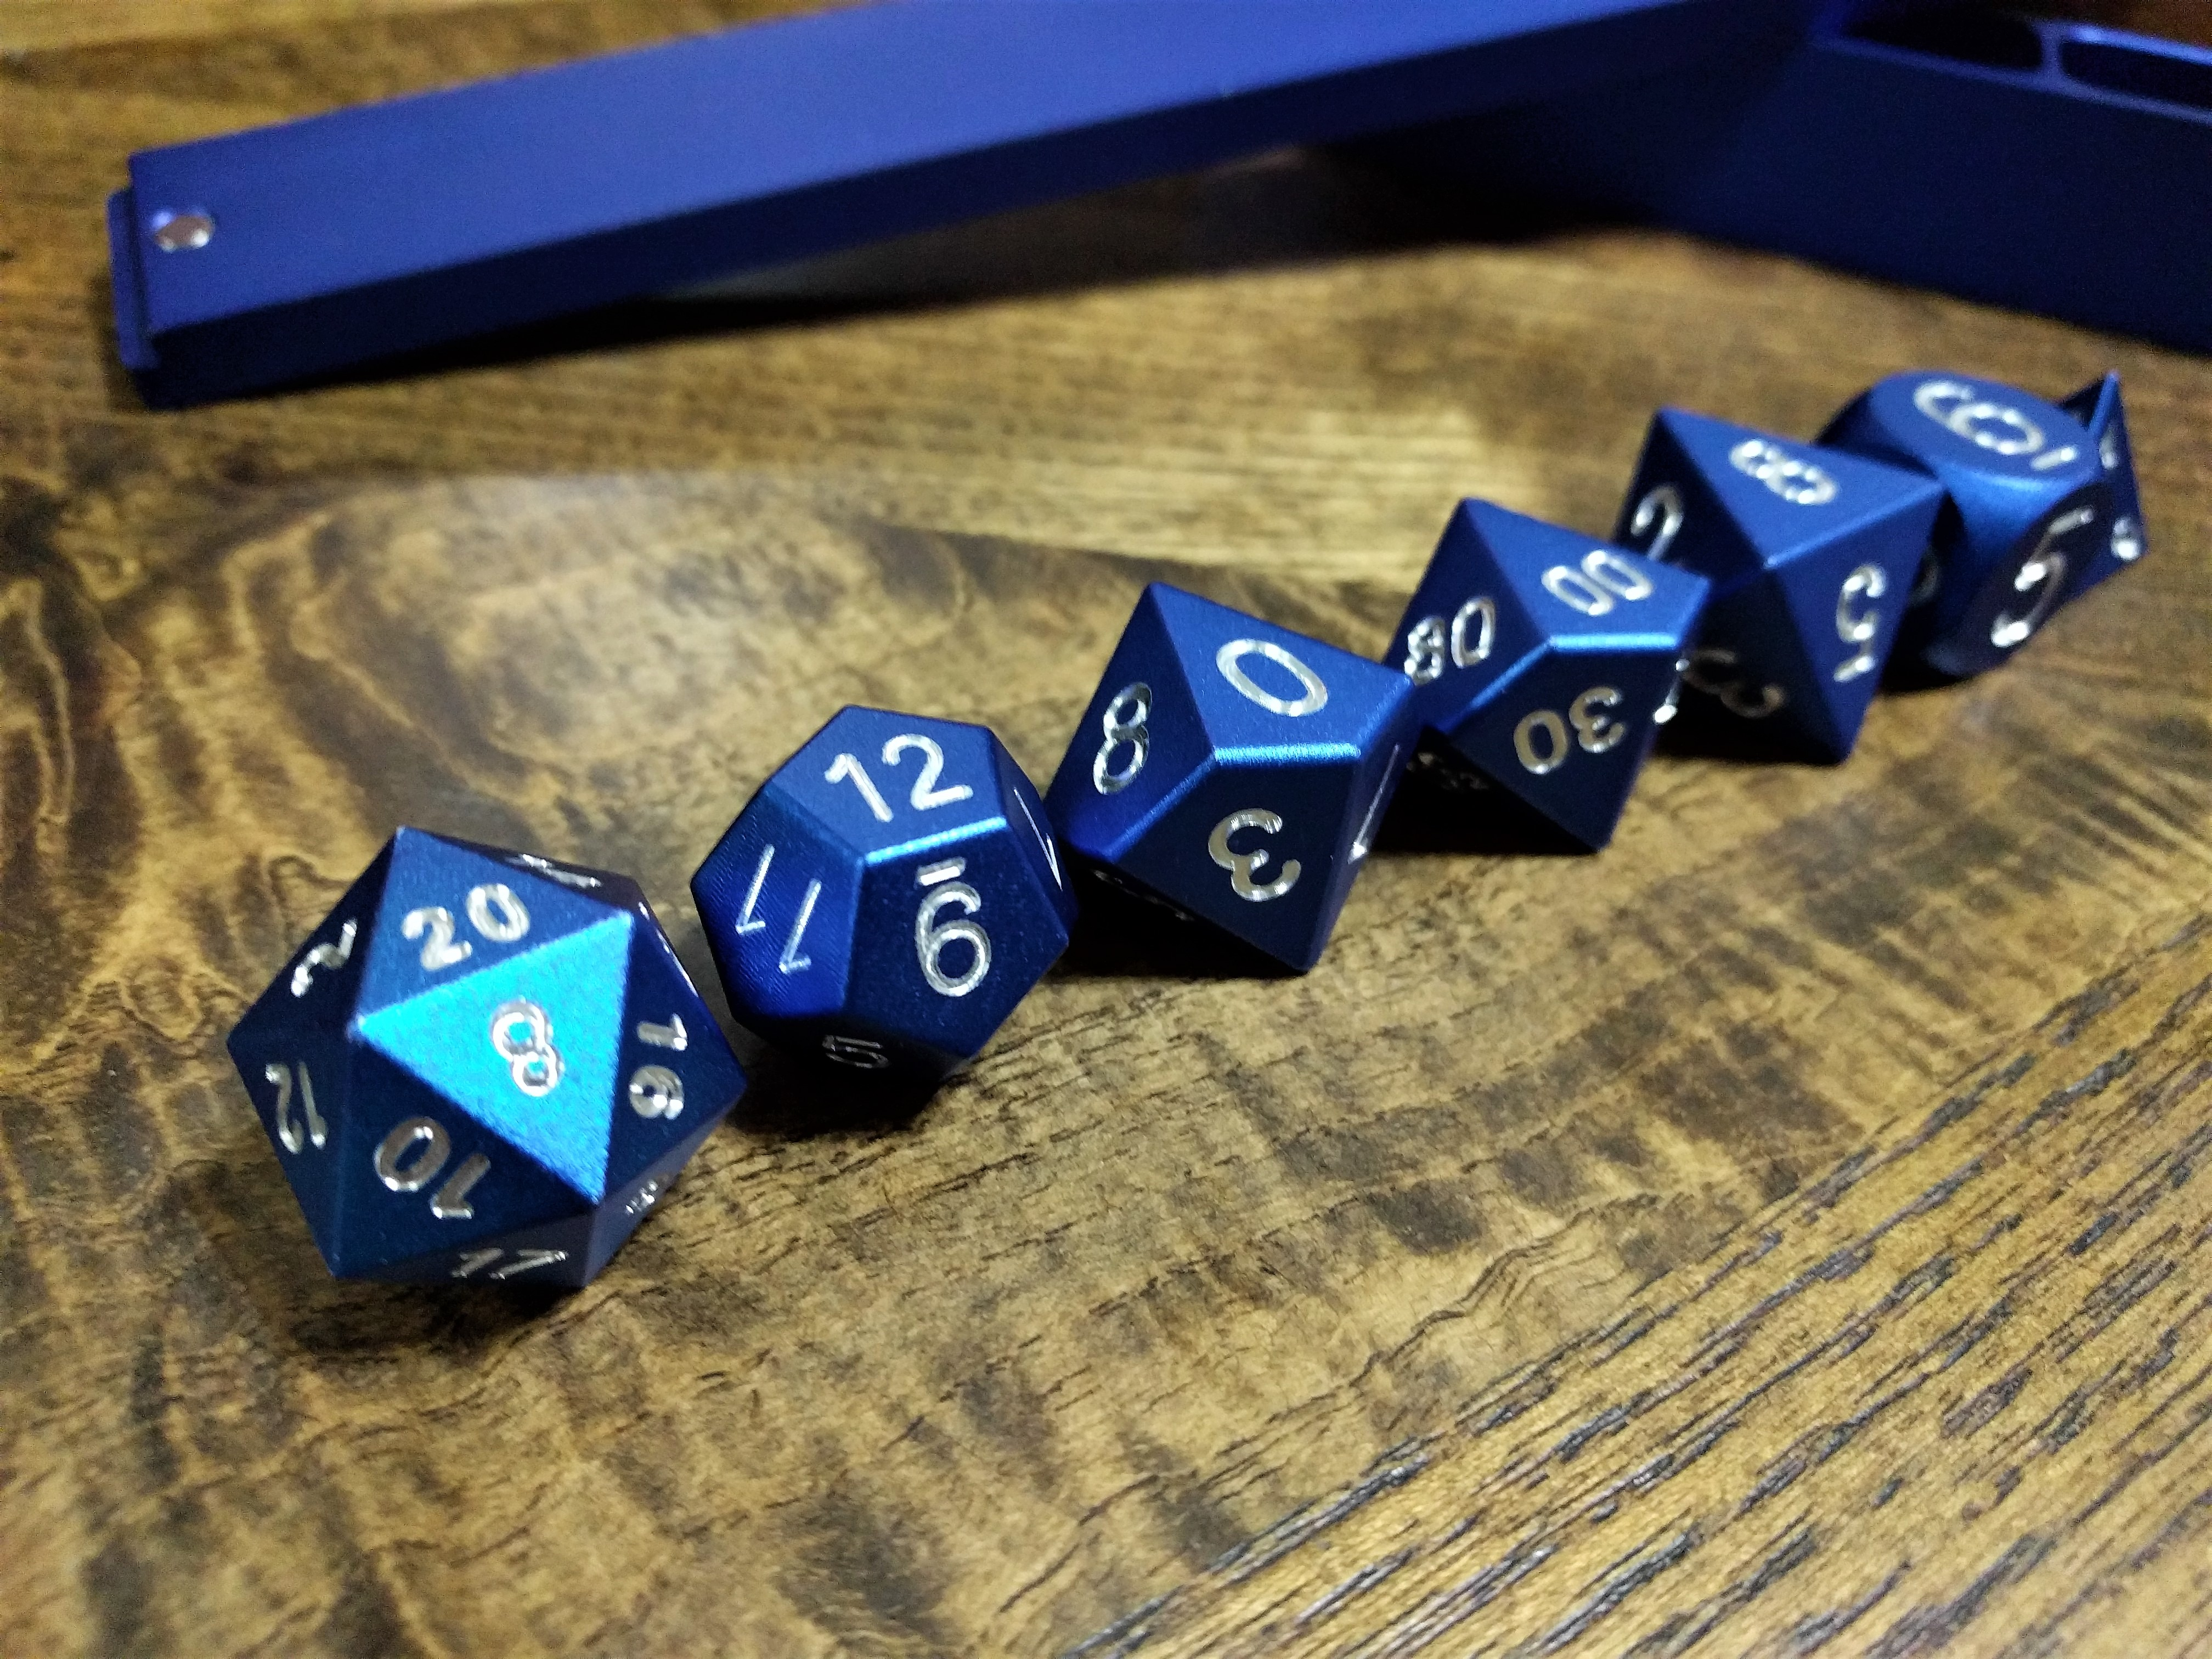 Norse Foundry Review Precision Aluminum Dice Dropthedie See more ideas about norse, gaming accessories, base metal. norse foundry review precision